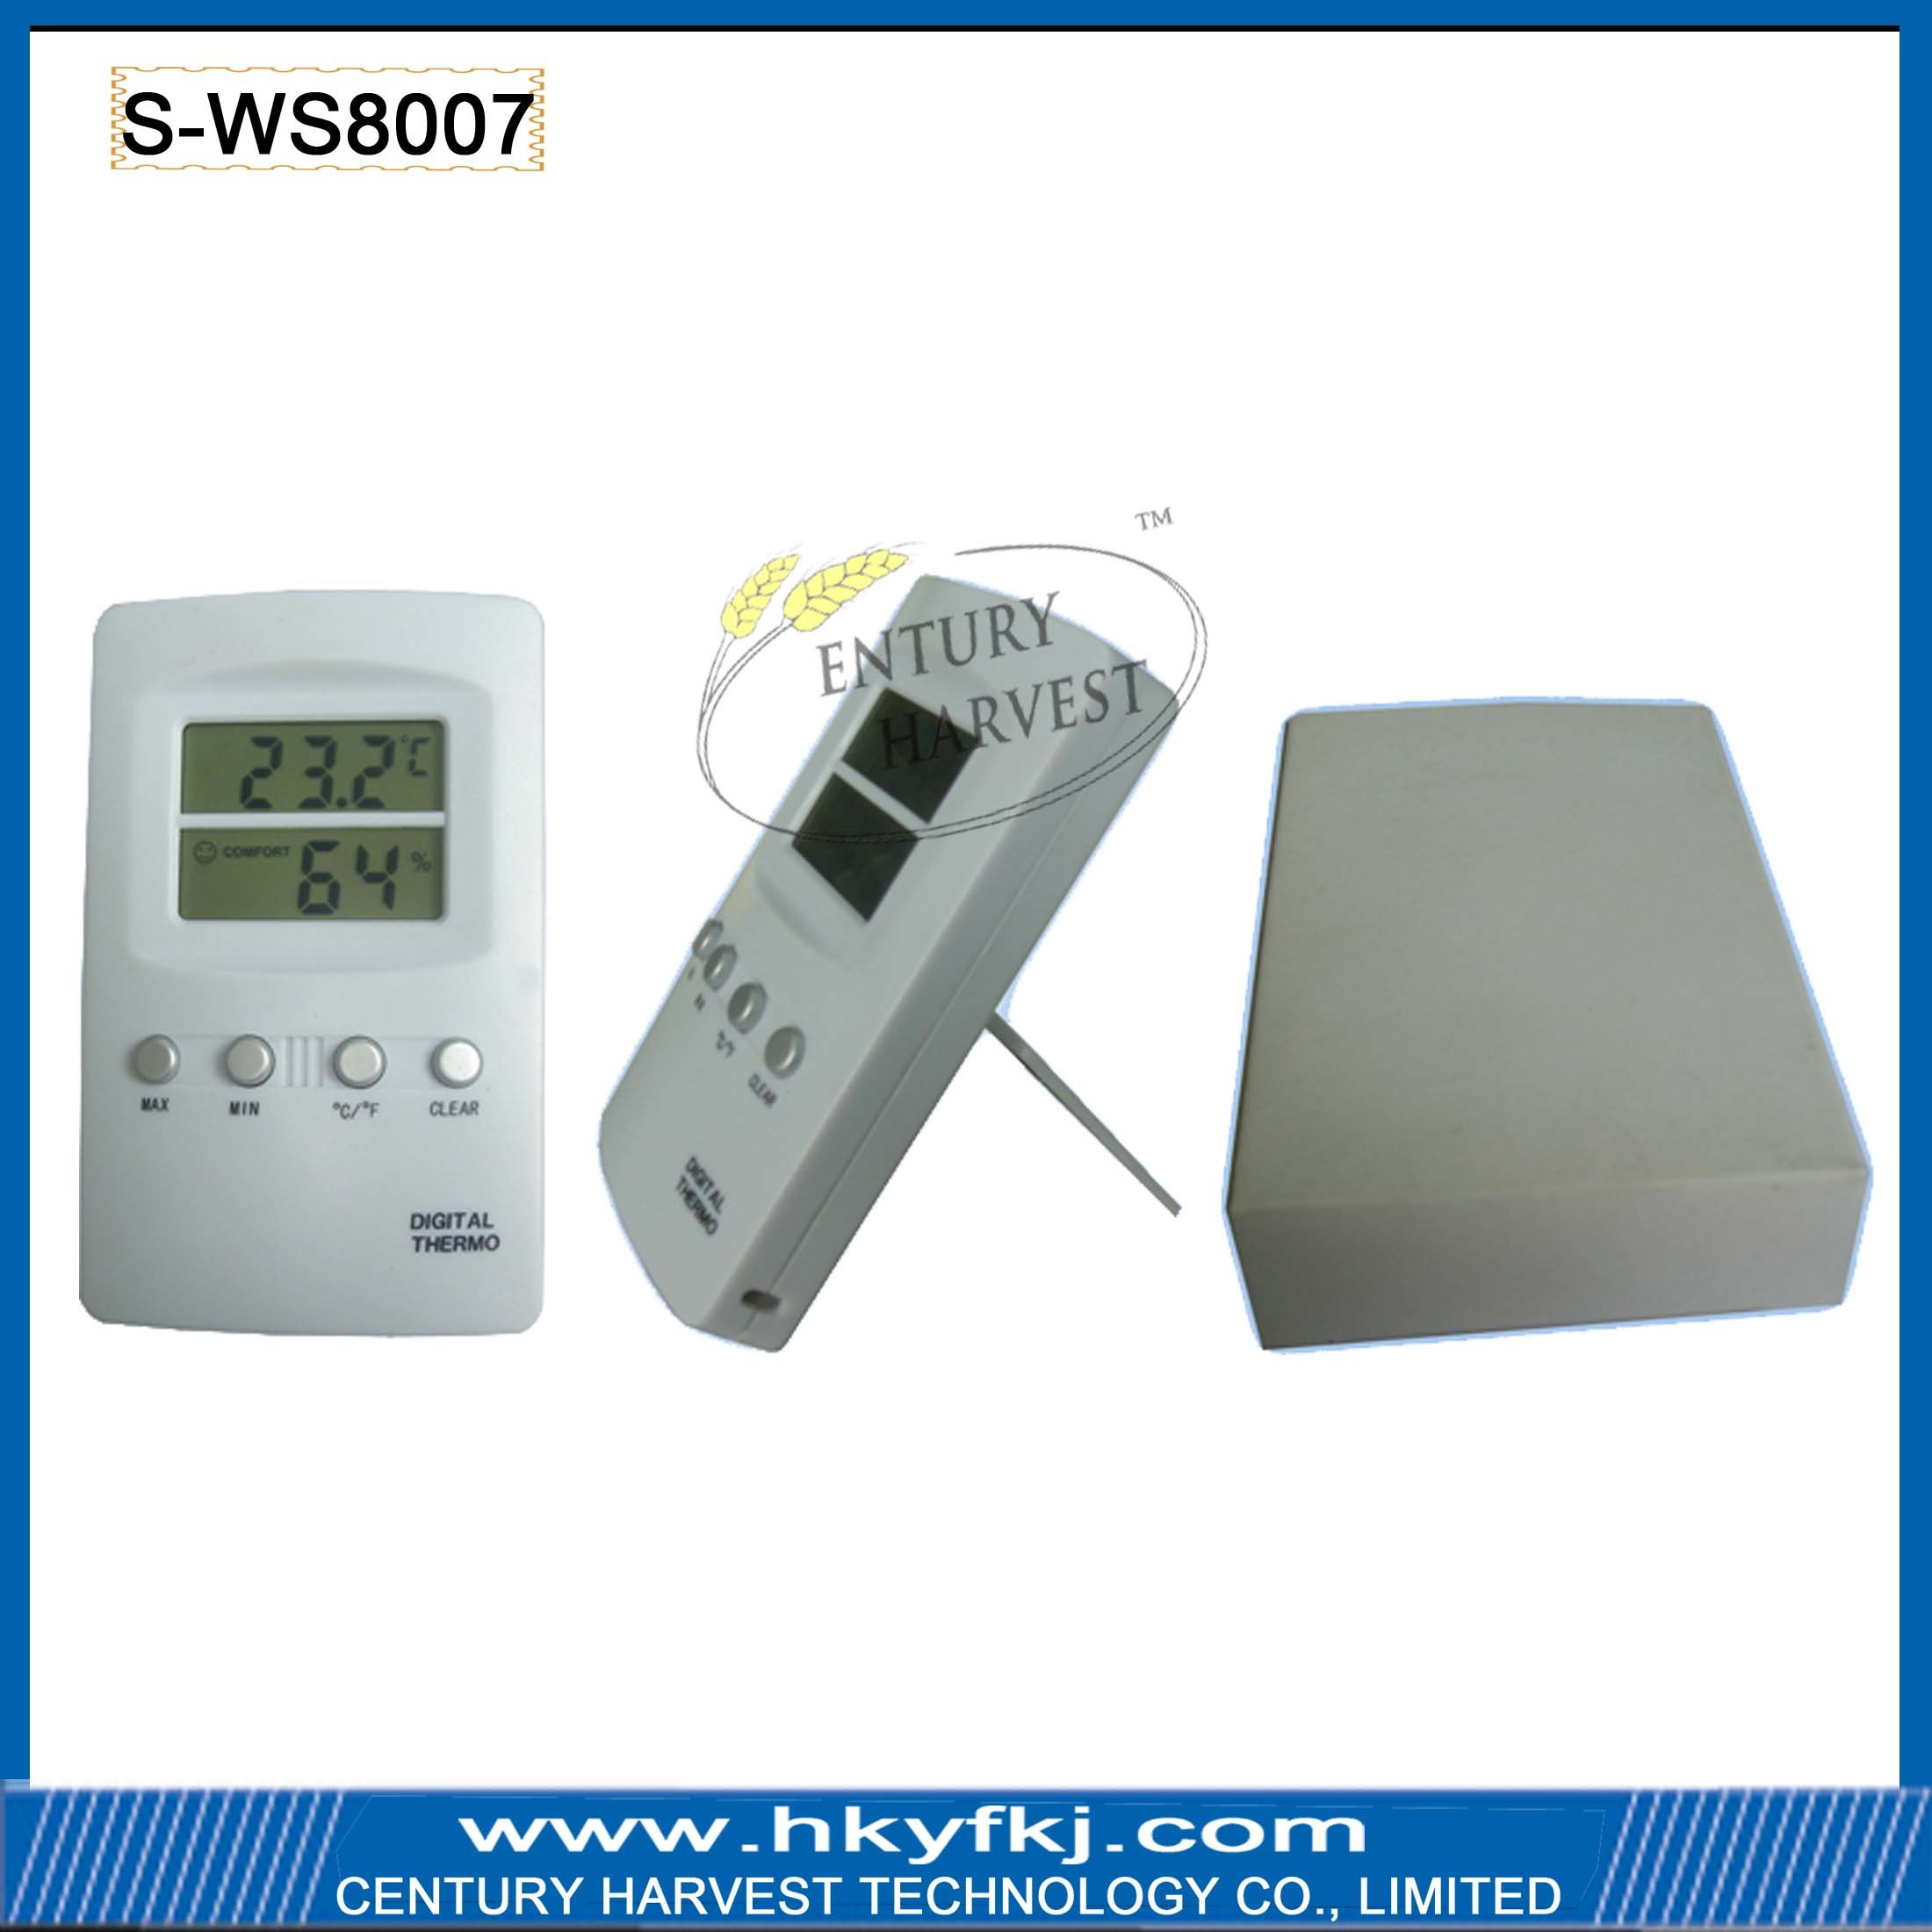 Controller (S WS8007) China Humidity Controller Temperature #00519F